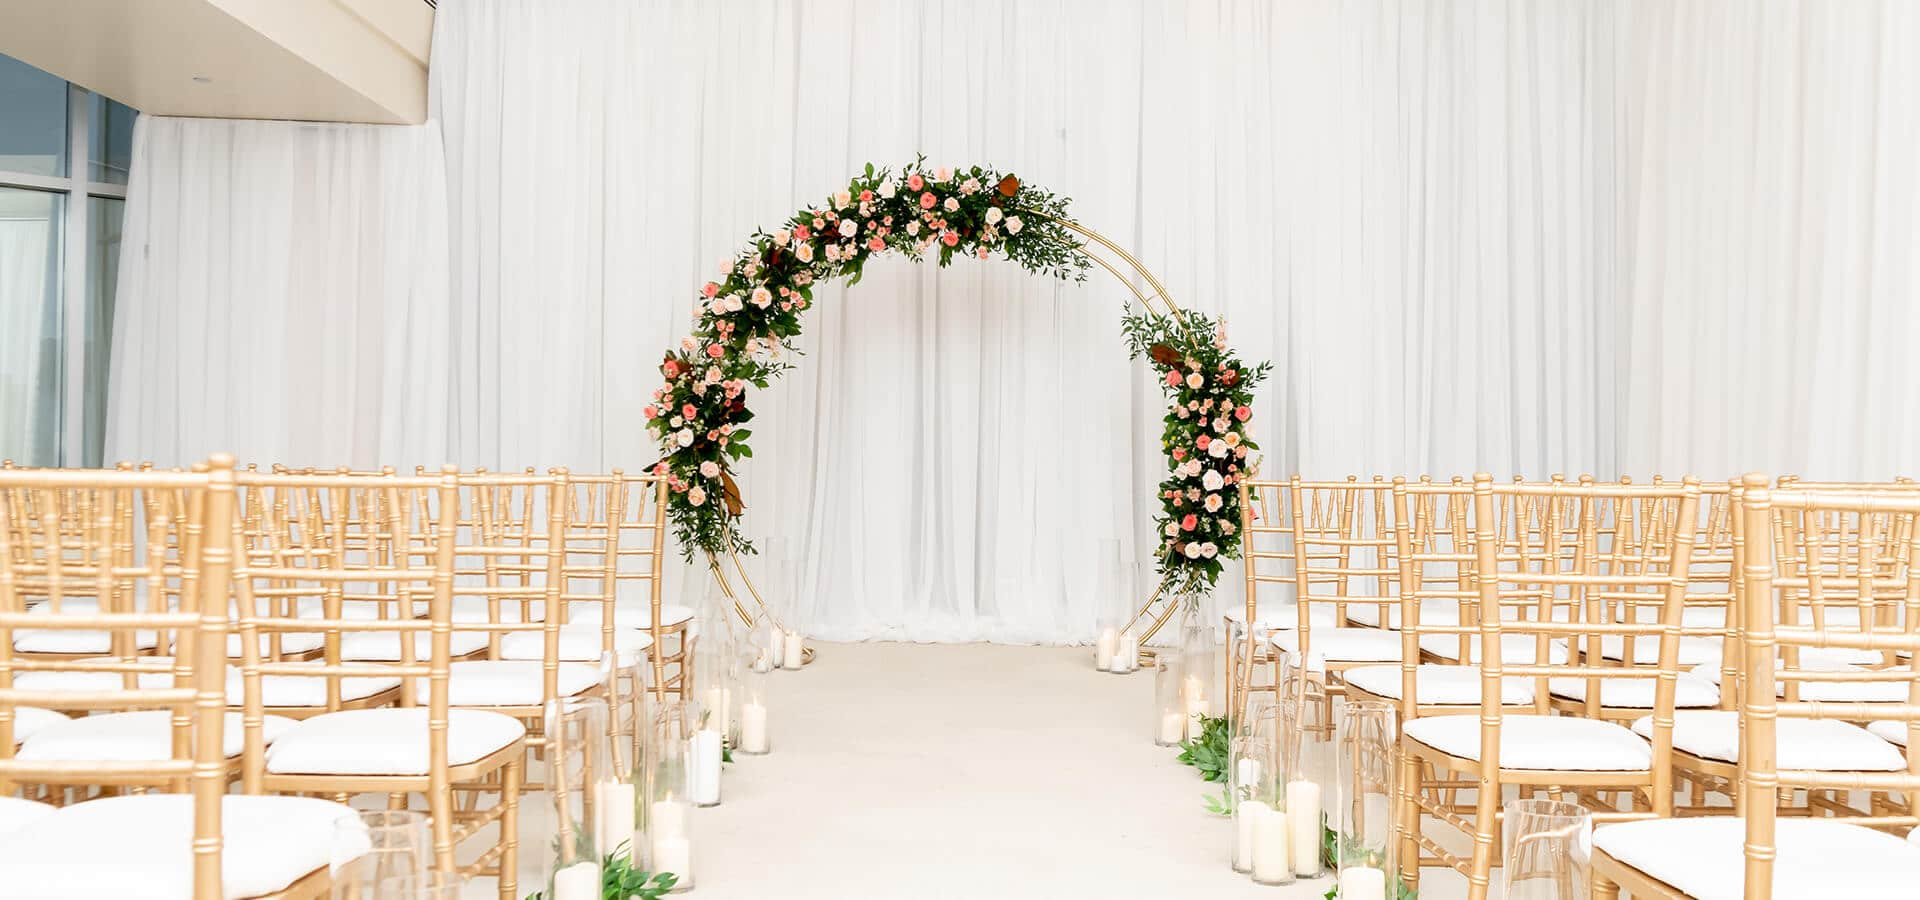 Hero image for The 2019 Vantage Venues Wedding Open House